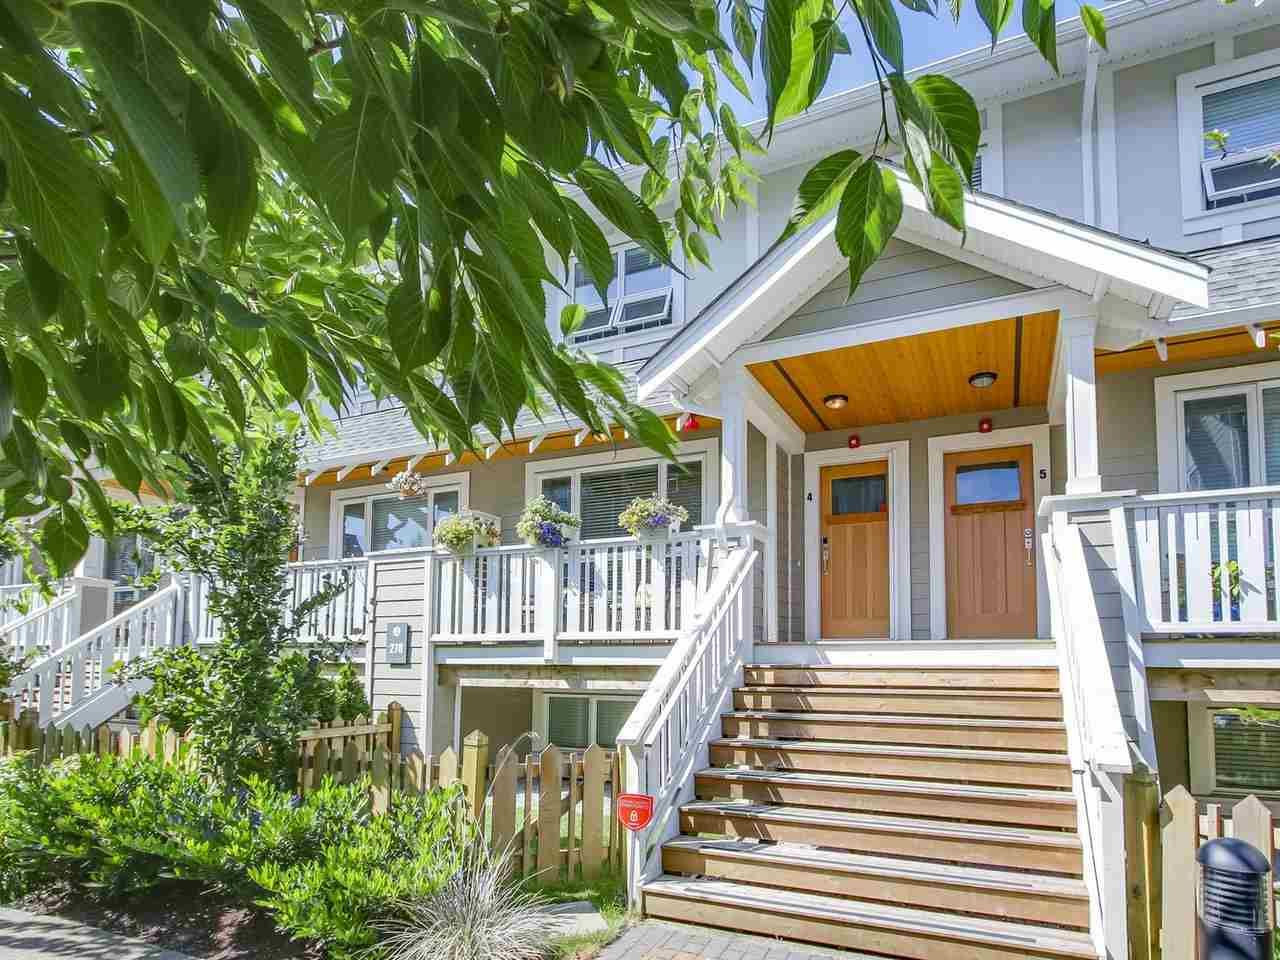 Main Photo: 4 278 CAMATA STREET in New Westminster: Queensborough Townhouse for sale : MLS®# R2193929